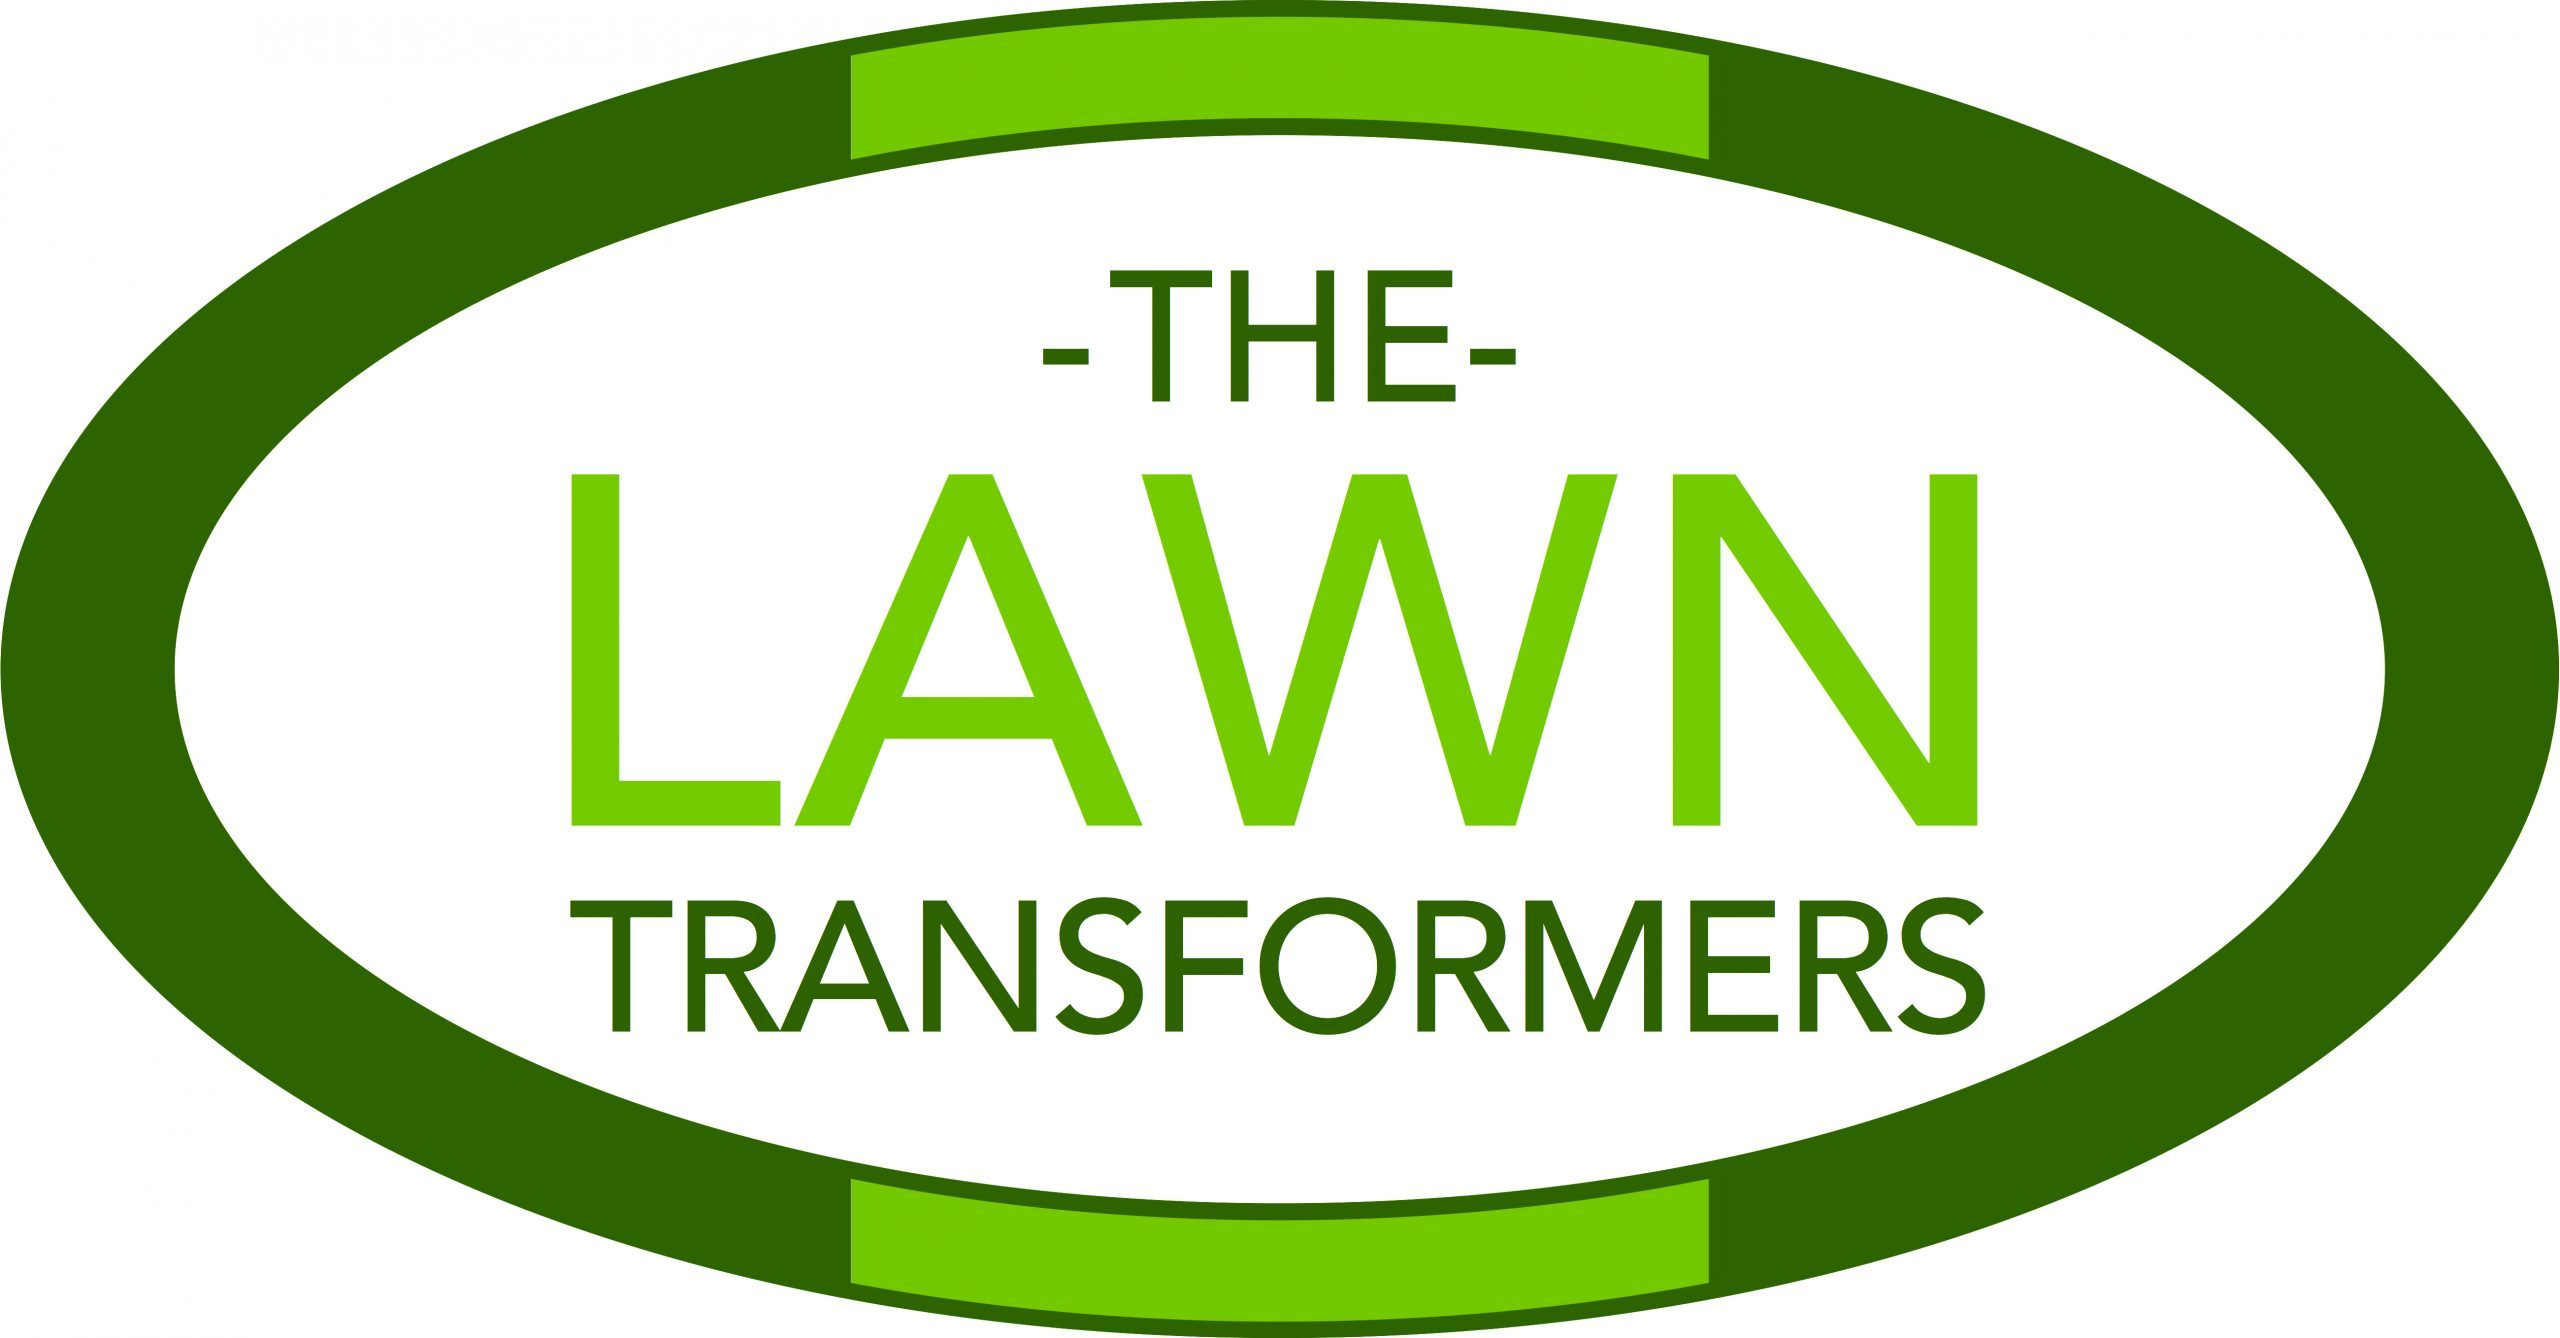 The Lawn Transformers – Local Lawn Care Company Maidstone Kent